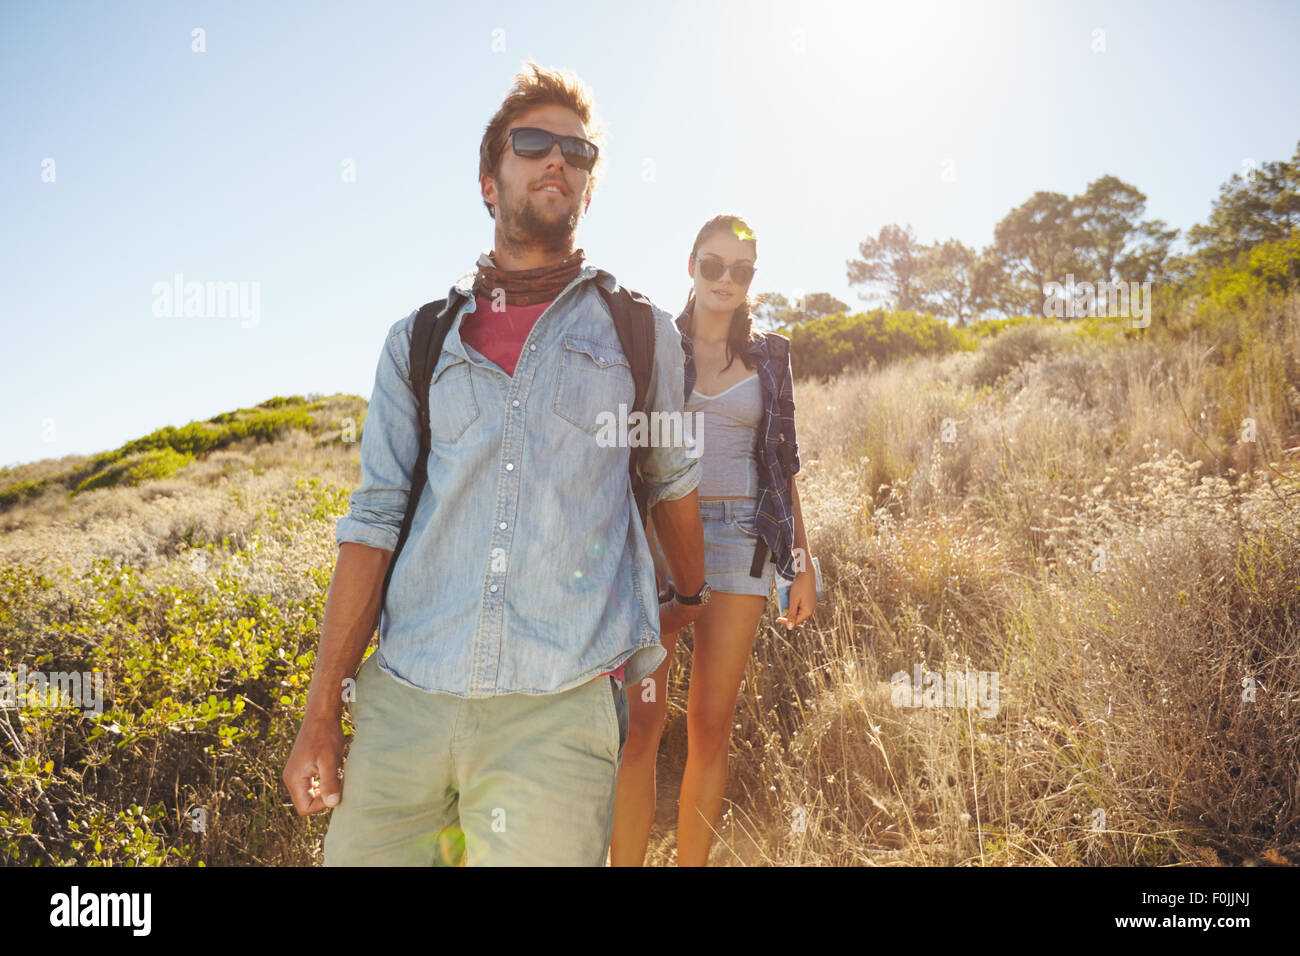 Image of young man hiking in mountains with his girlfriend. Couple walking downhill on sunny day. - Stock Image